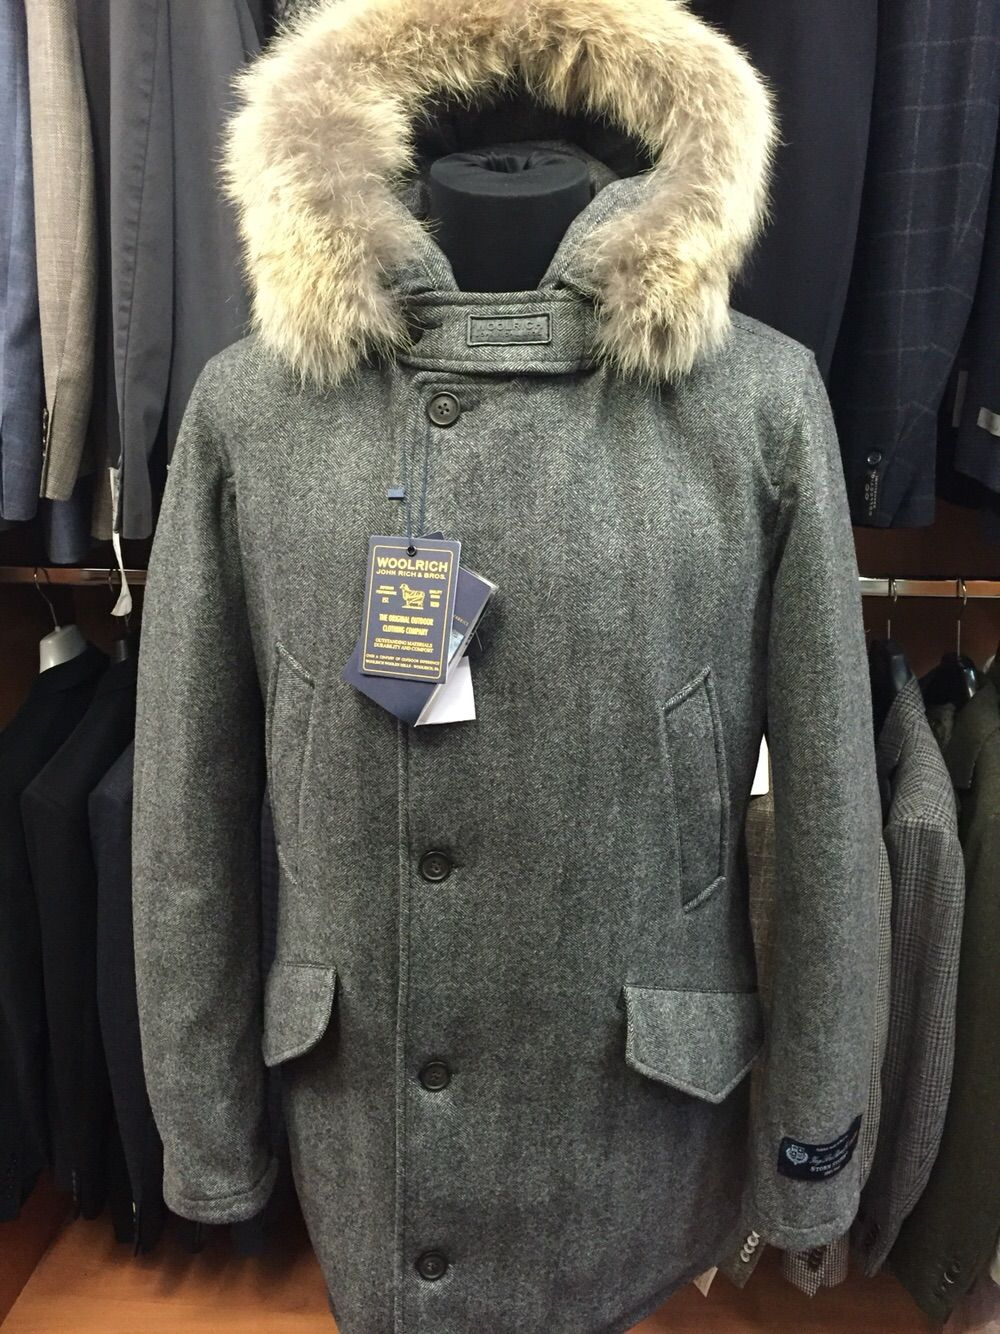 Esecuzione Speciale Del Parka Woolrich In Tessuto Impermeabile Storm